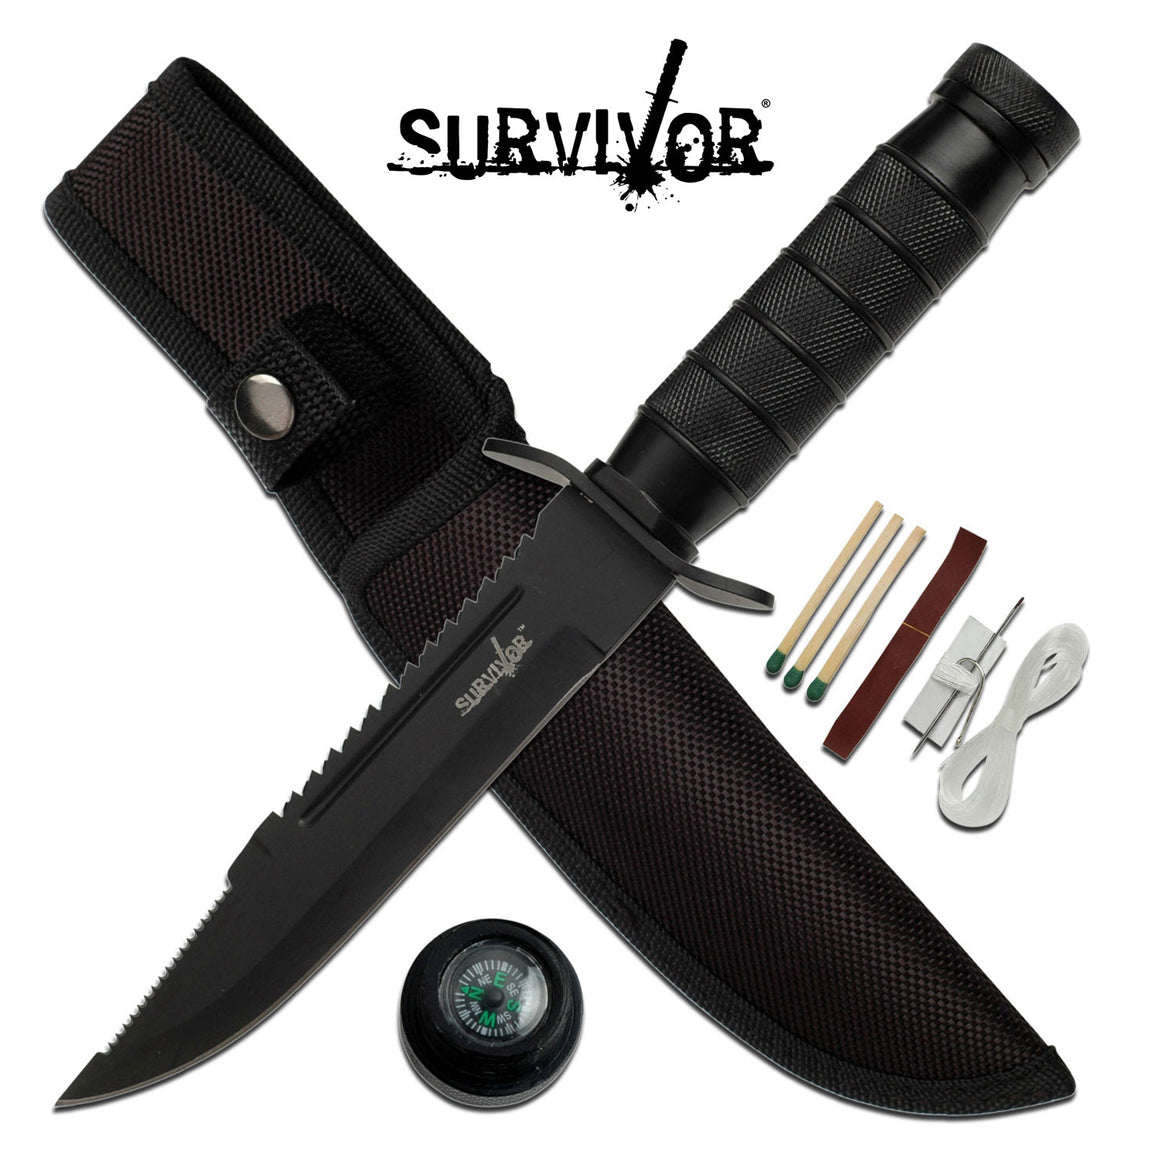 Survivor HK-695B Fixed Blade Knife